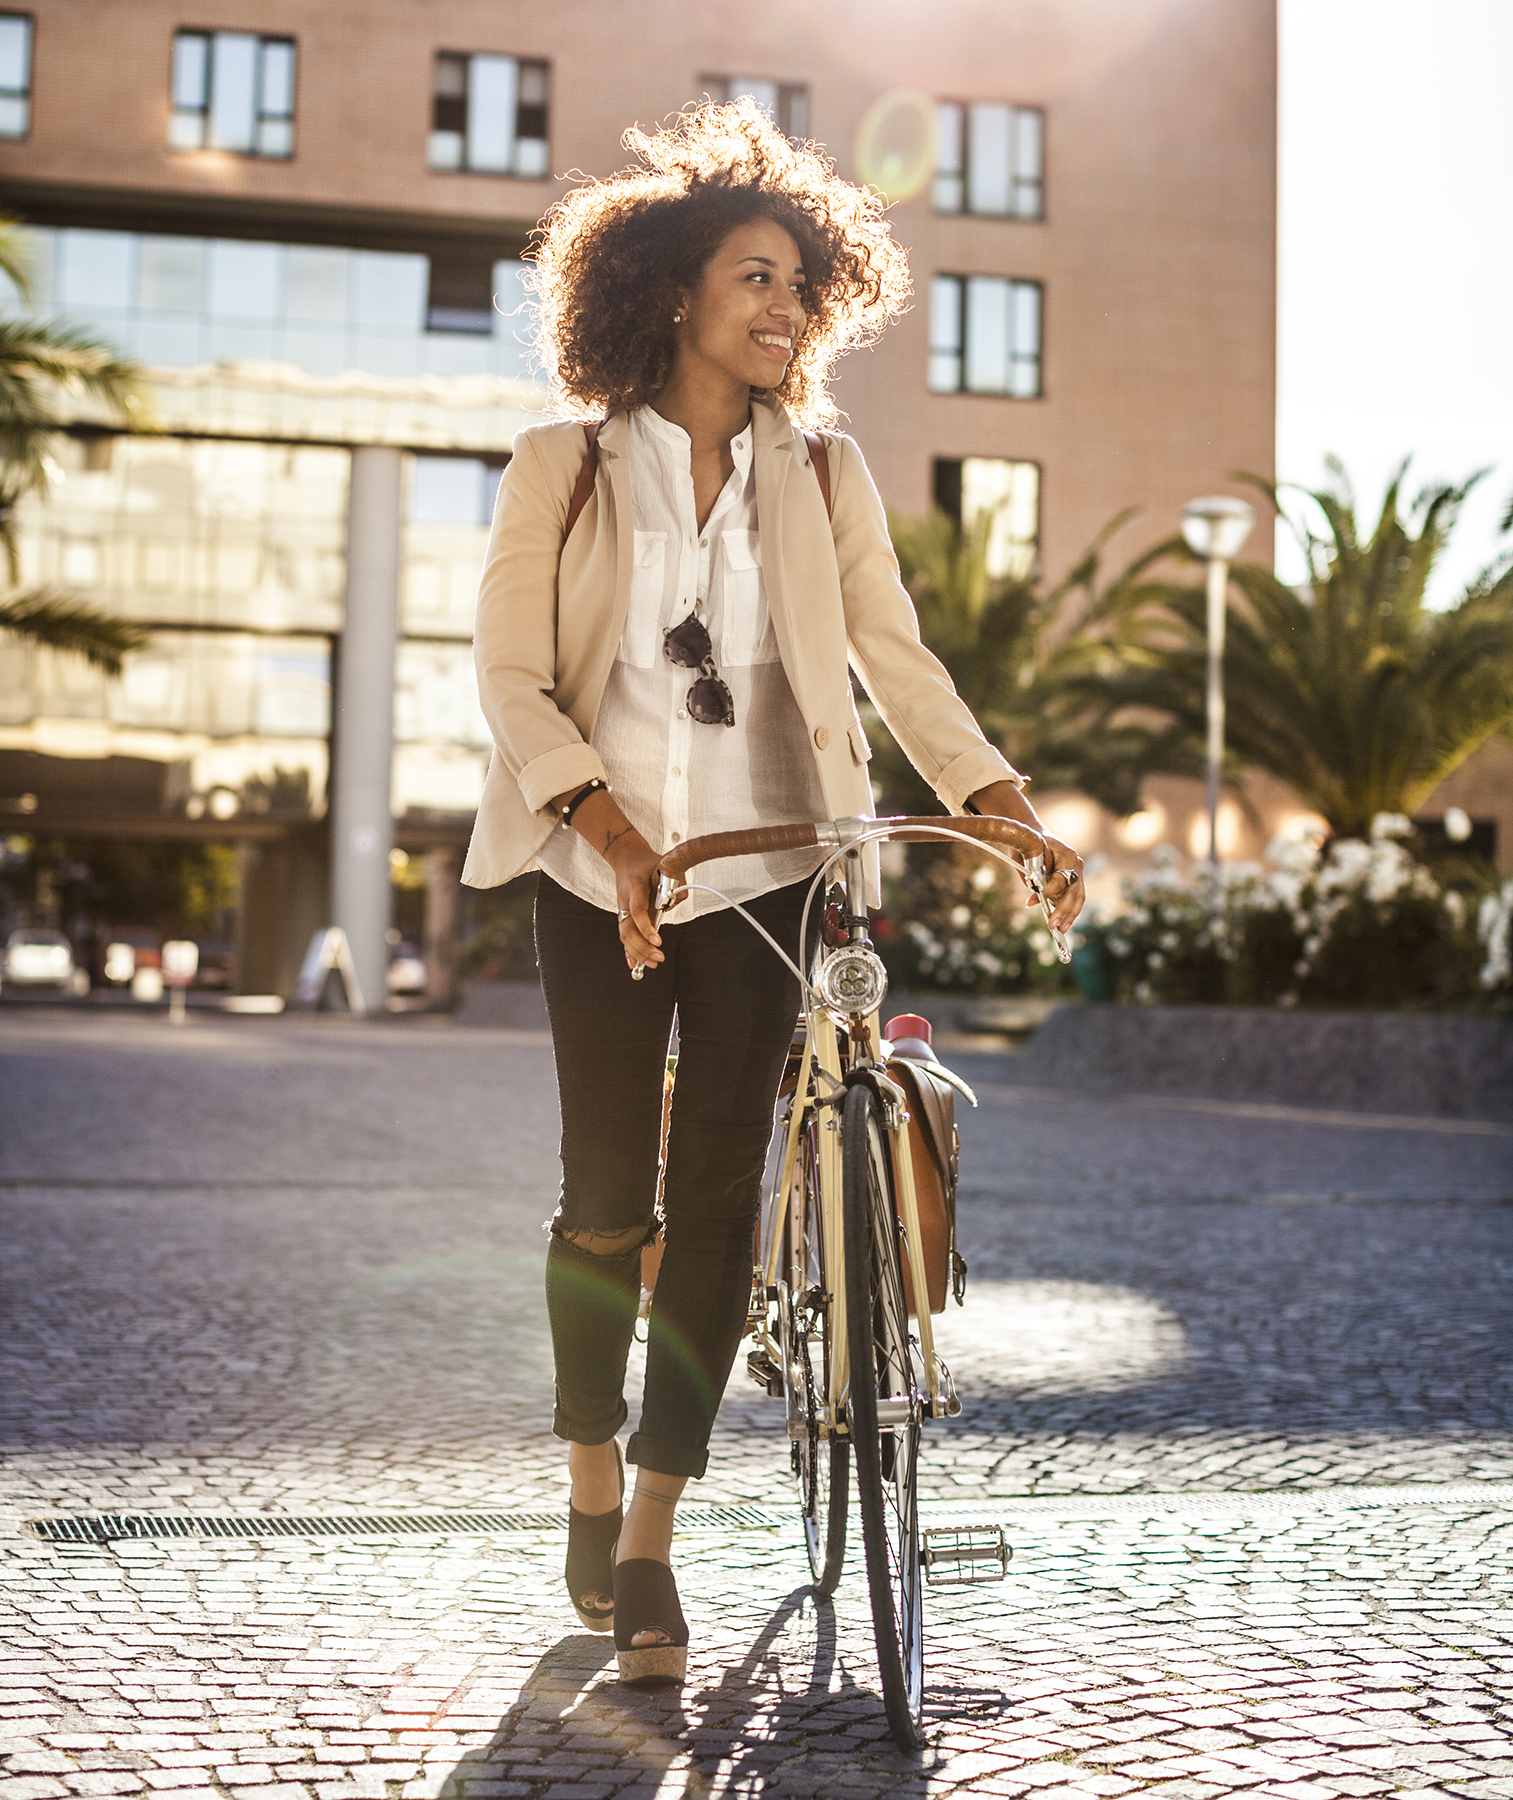 woman-bicycle-city